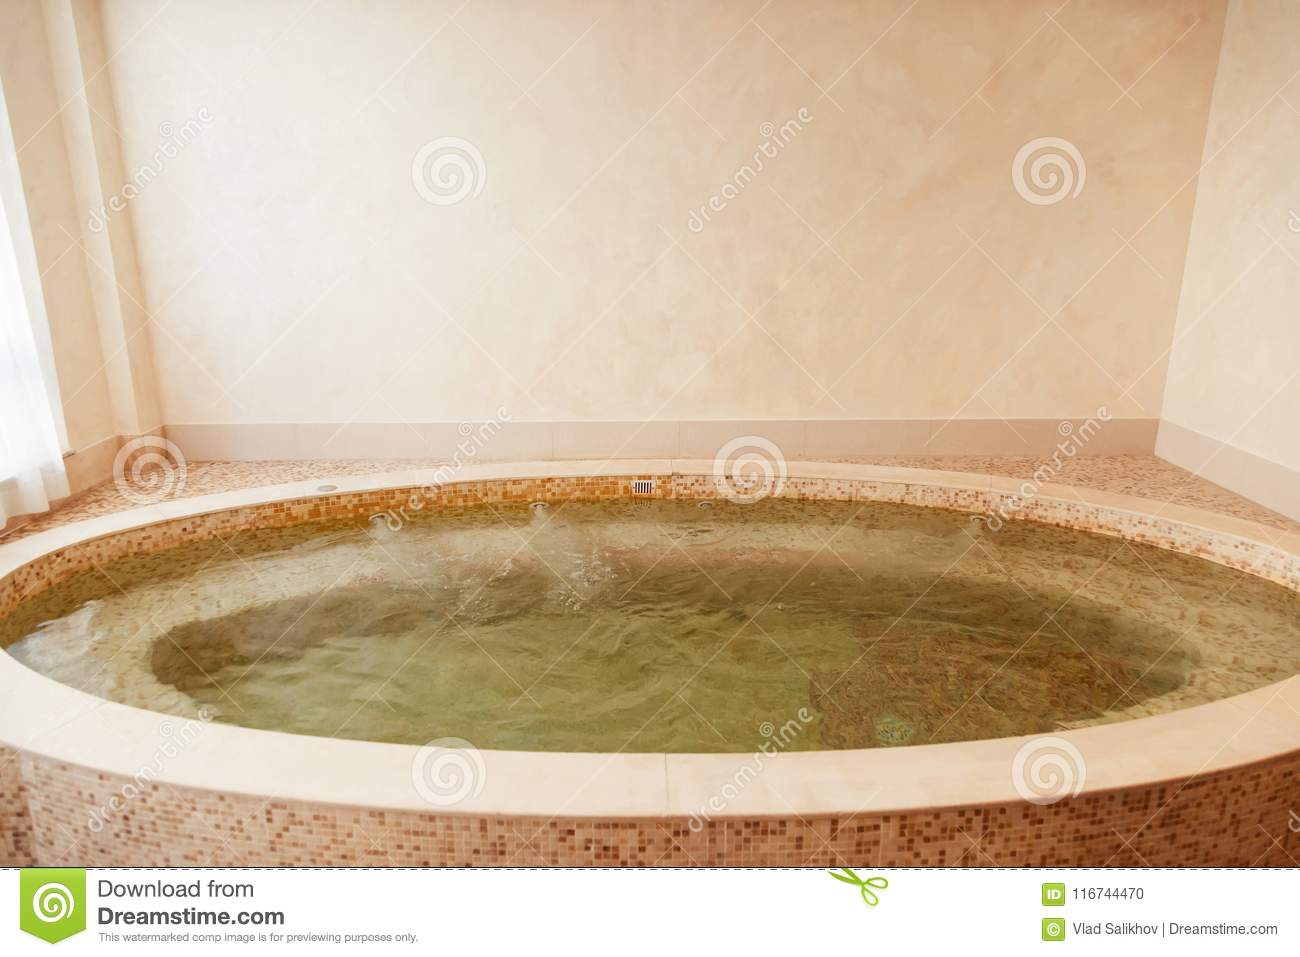 Jacuzzi Baths In Hotel Spa Center Stock Photo - Image of bath ...